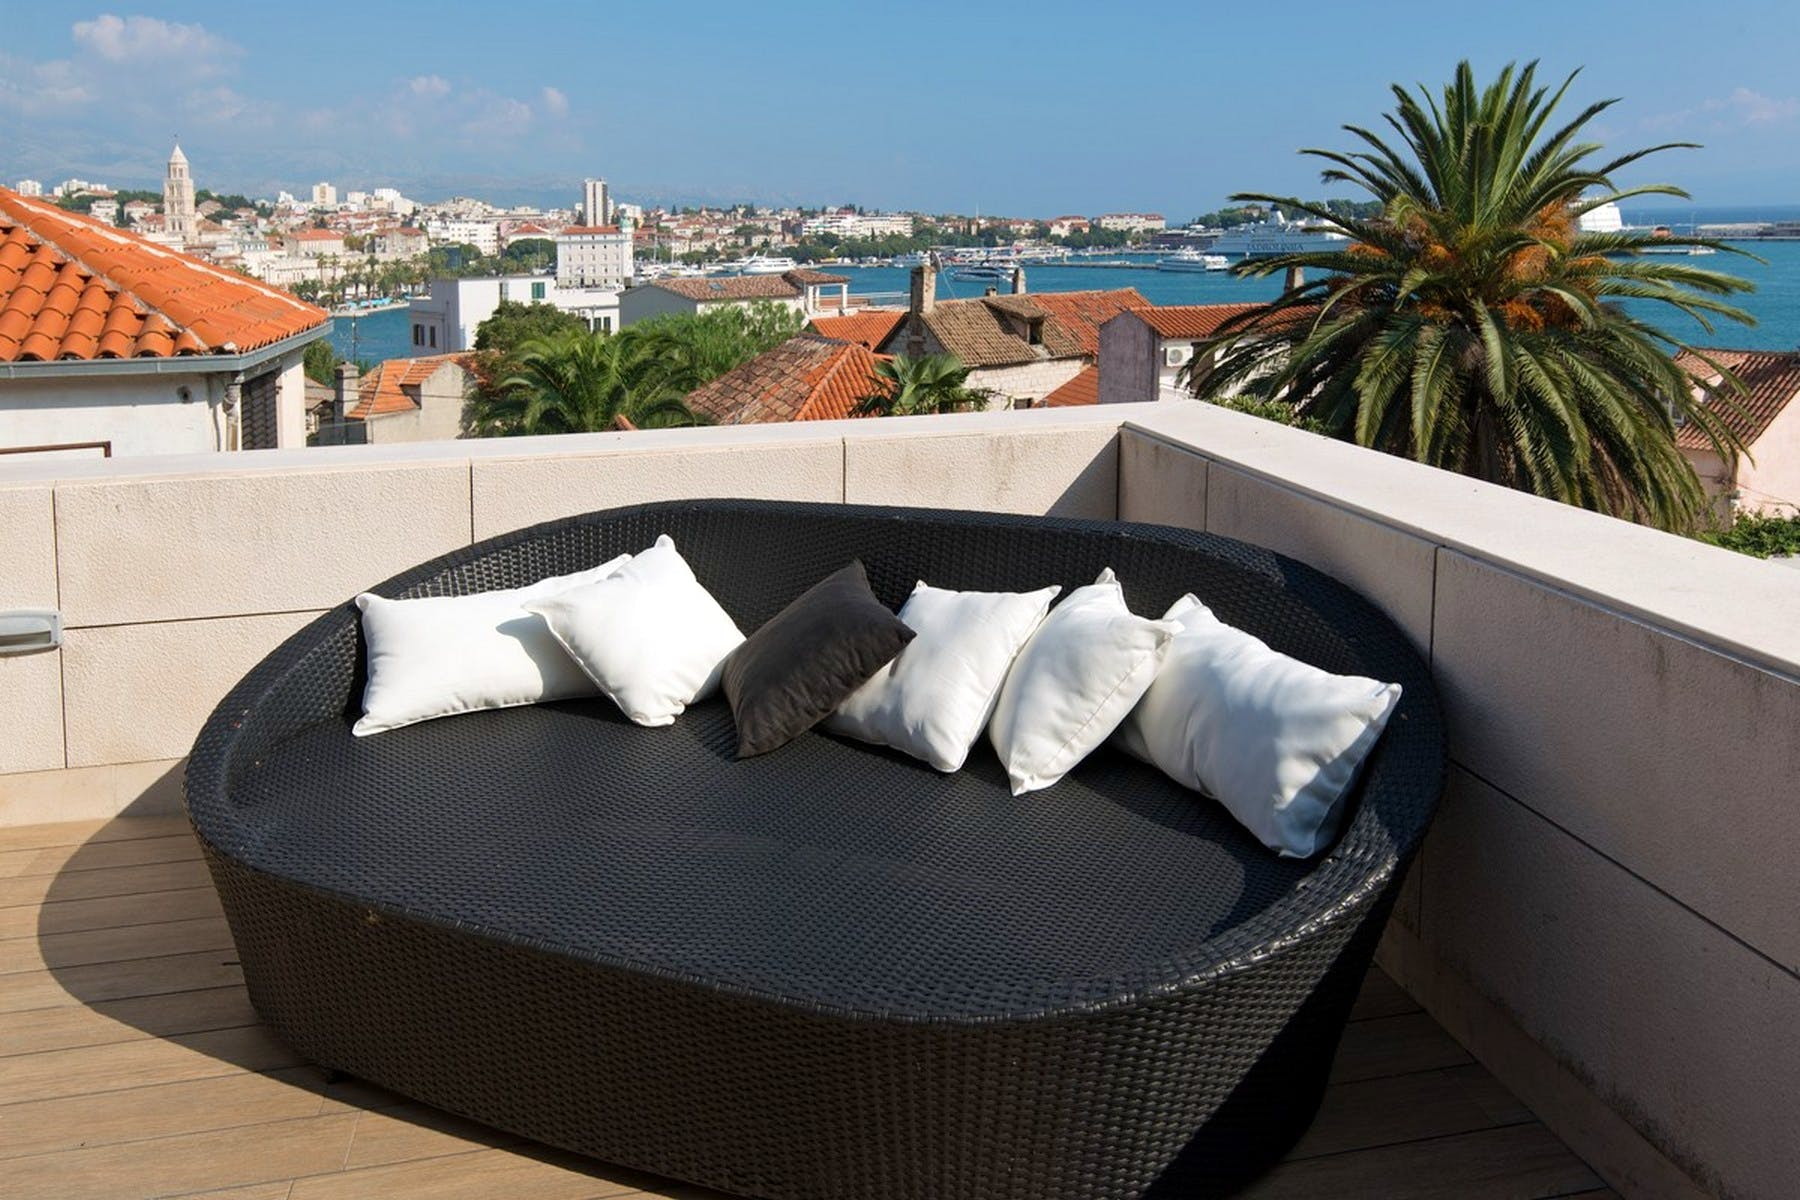 Cozy place for relaxation on the terrace